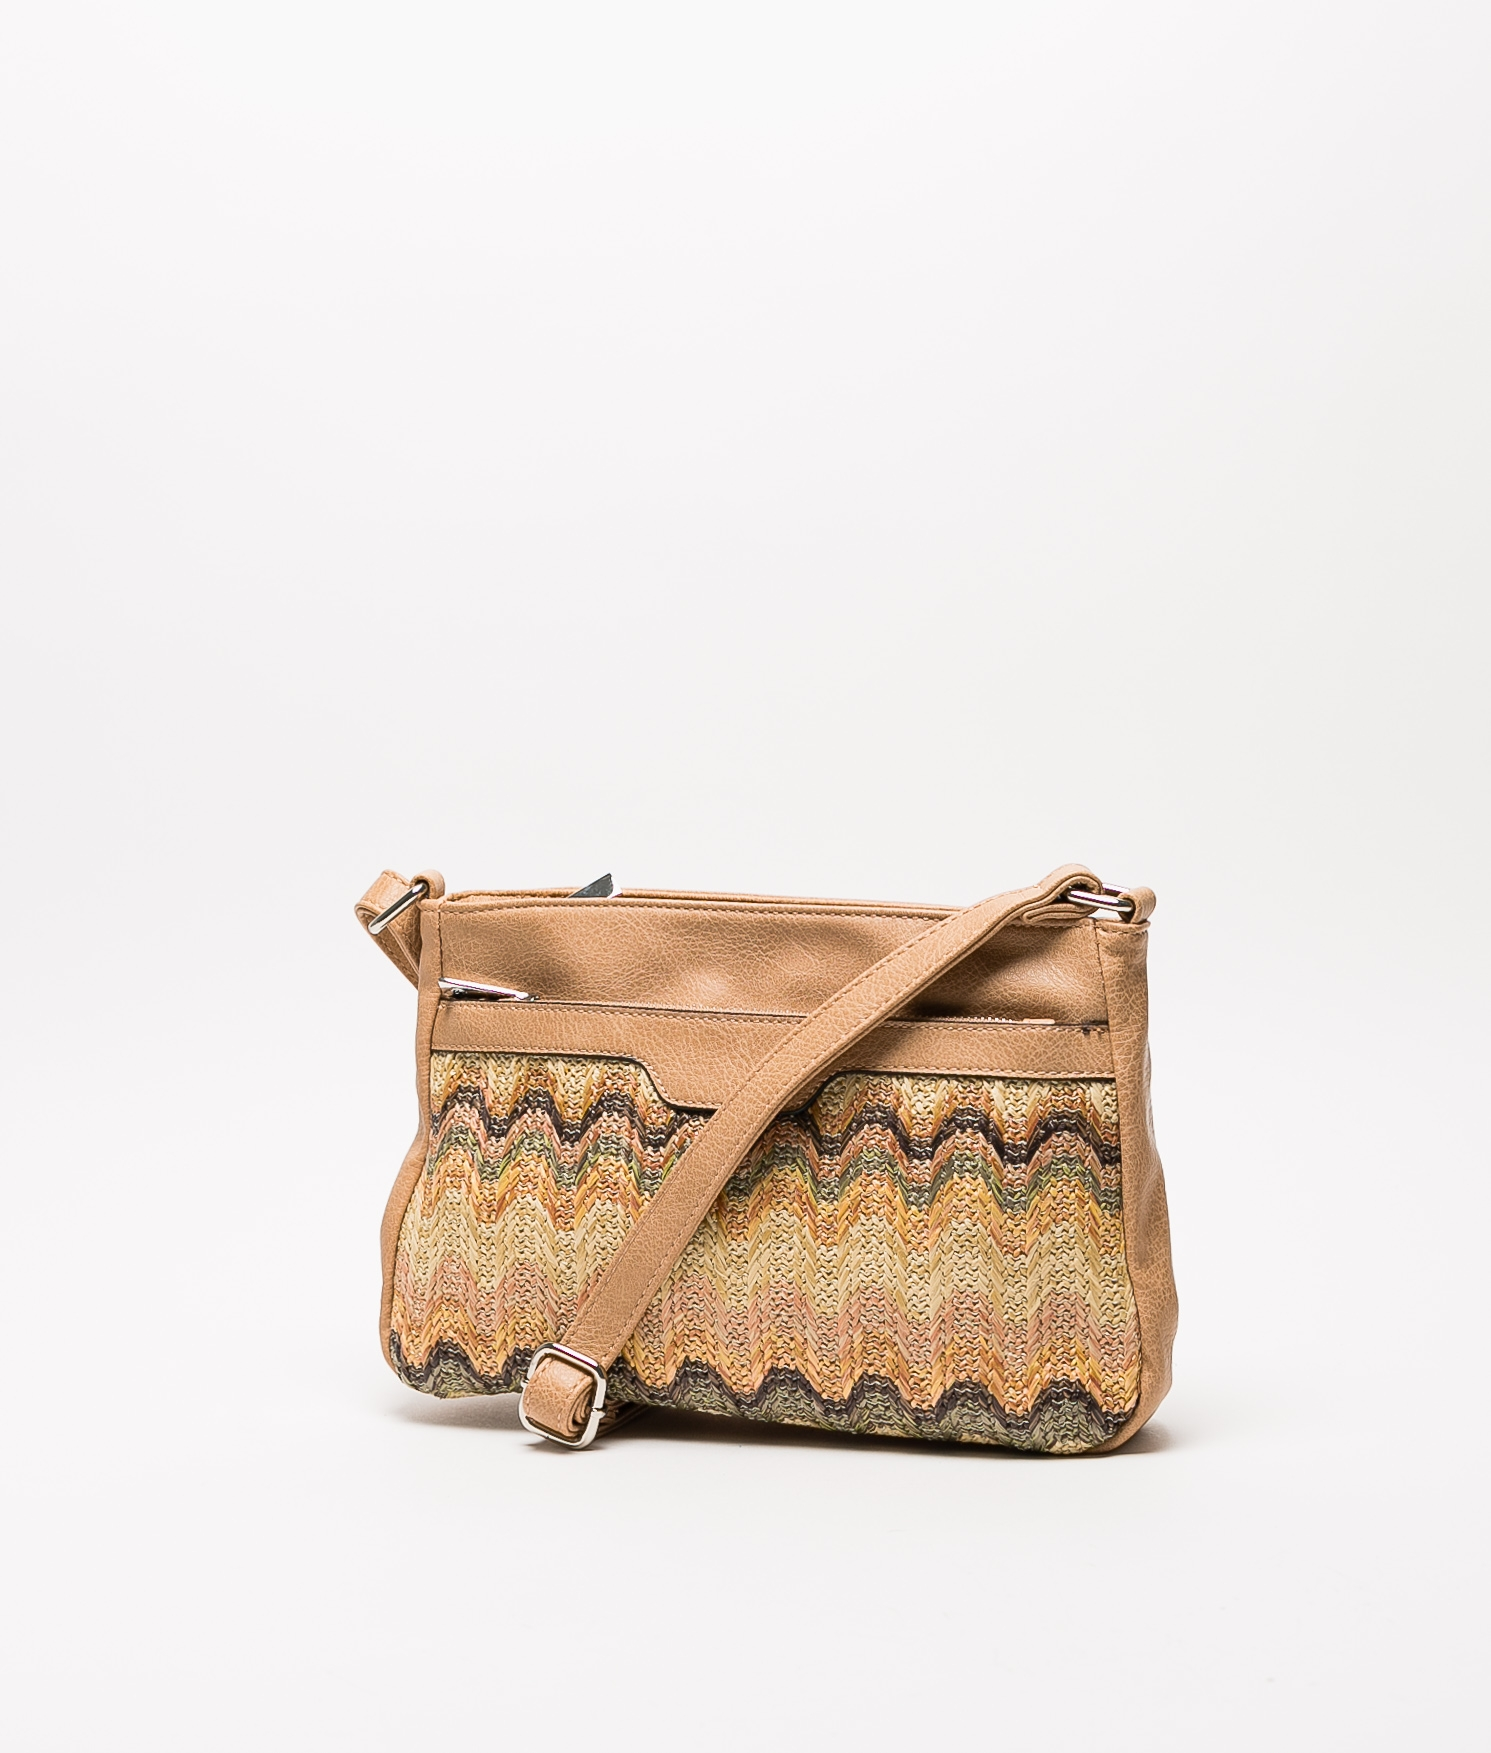 DIONNE WALLET - TAUPE